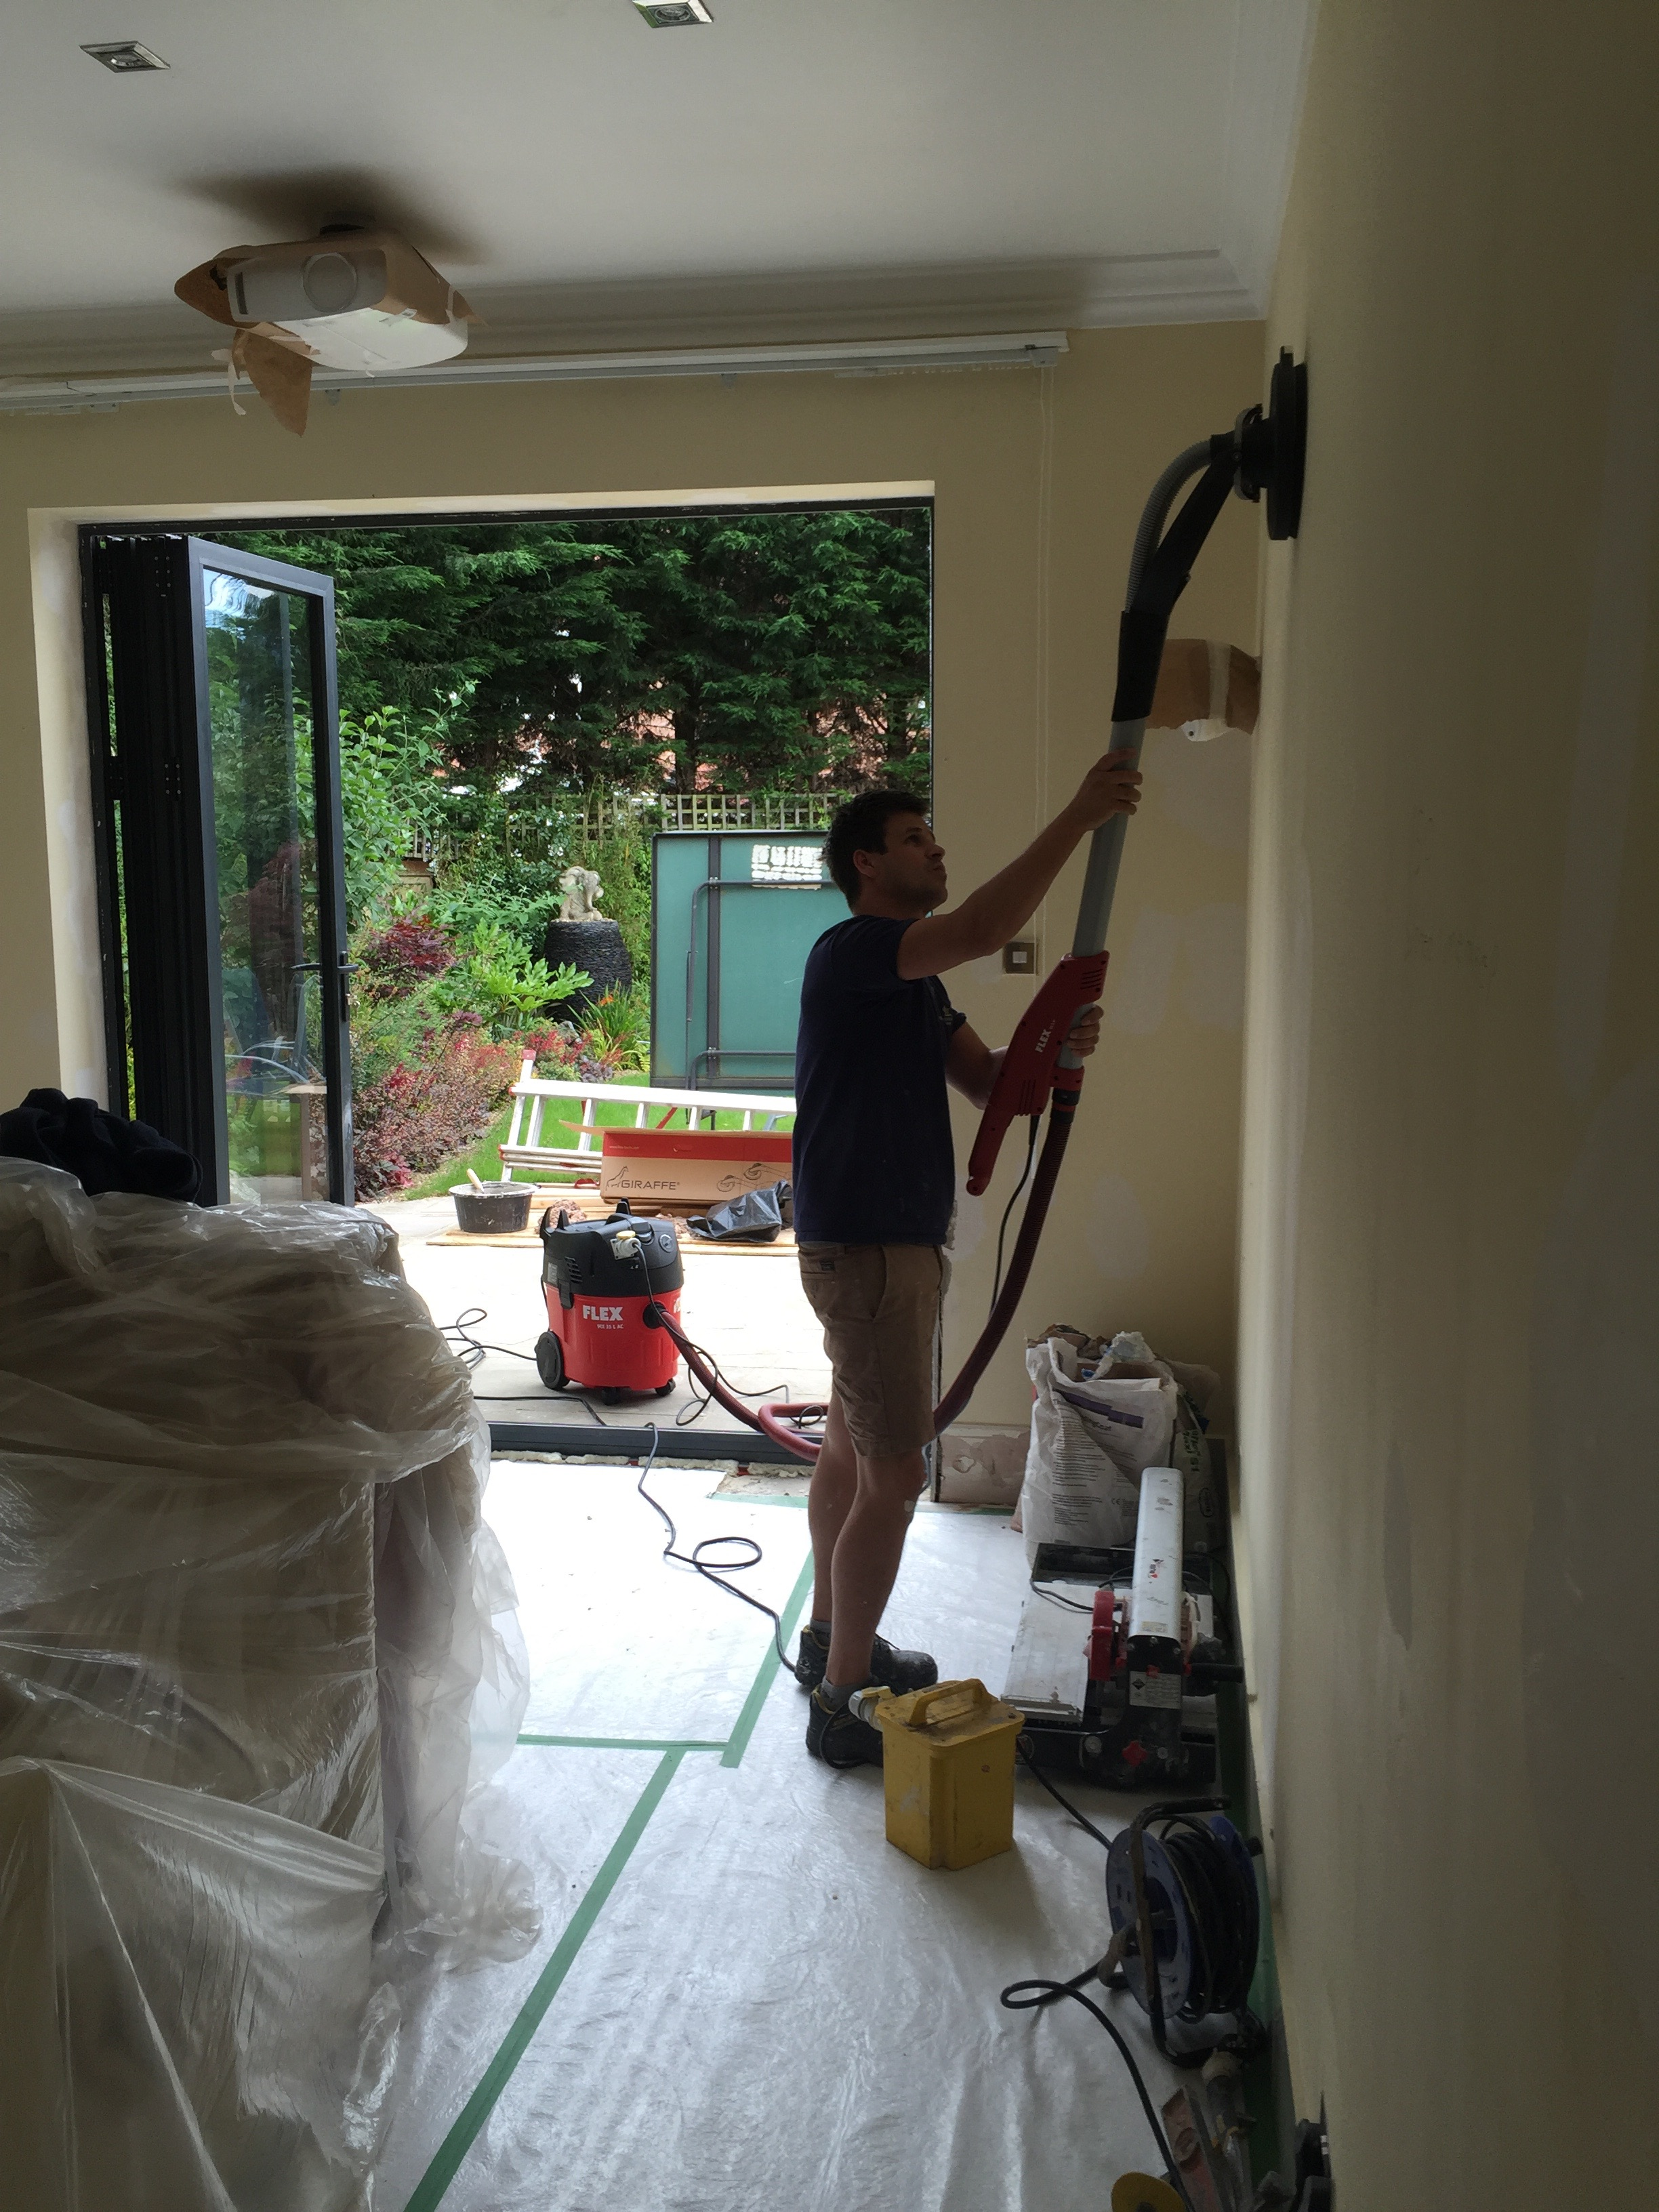 SANDING THE WALL TO SMOOTHEST FINISH